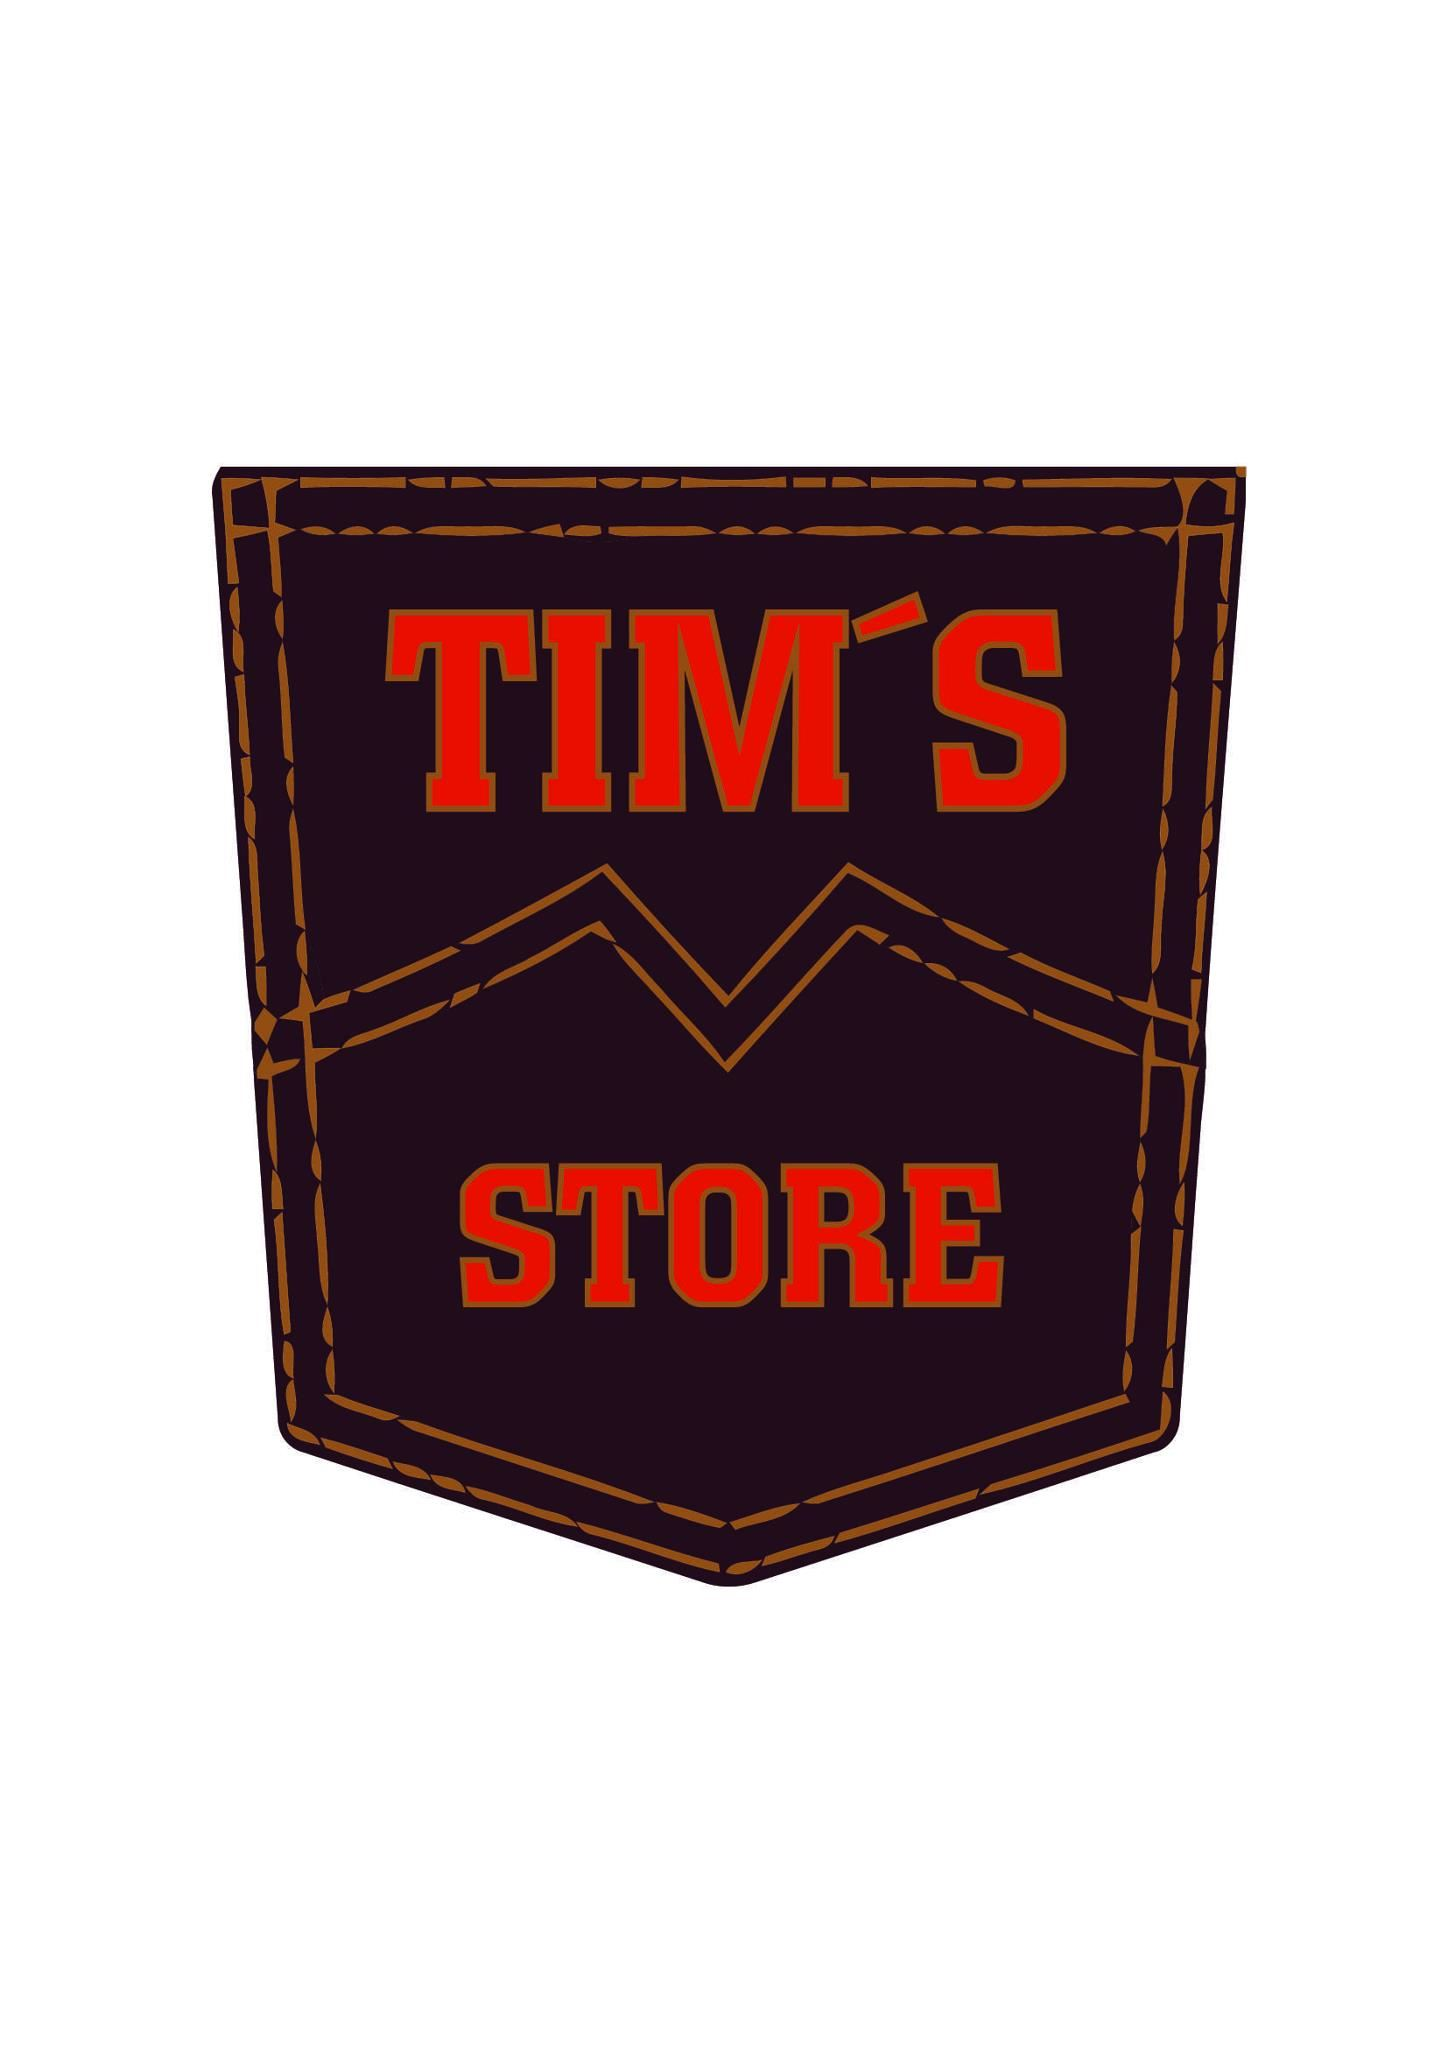 Tims store